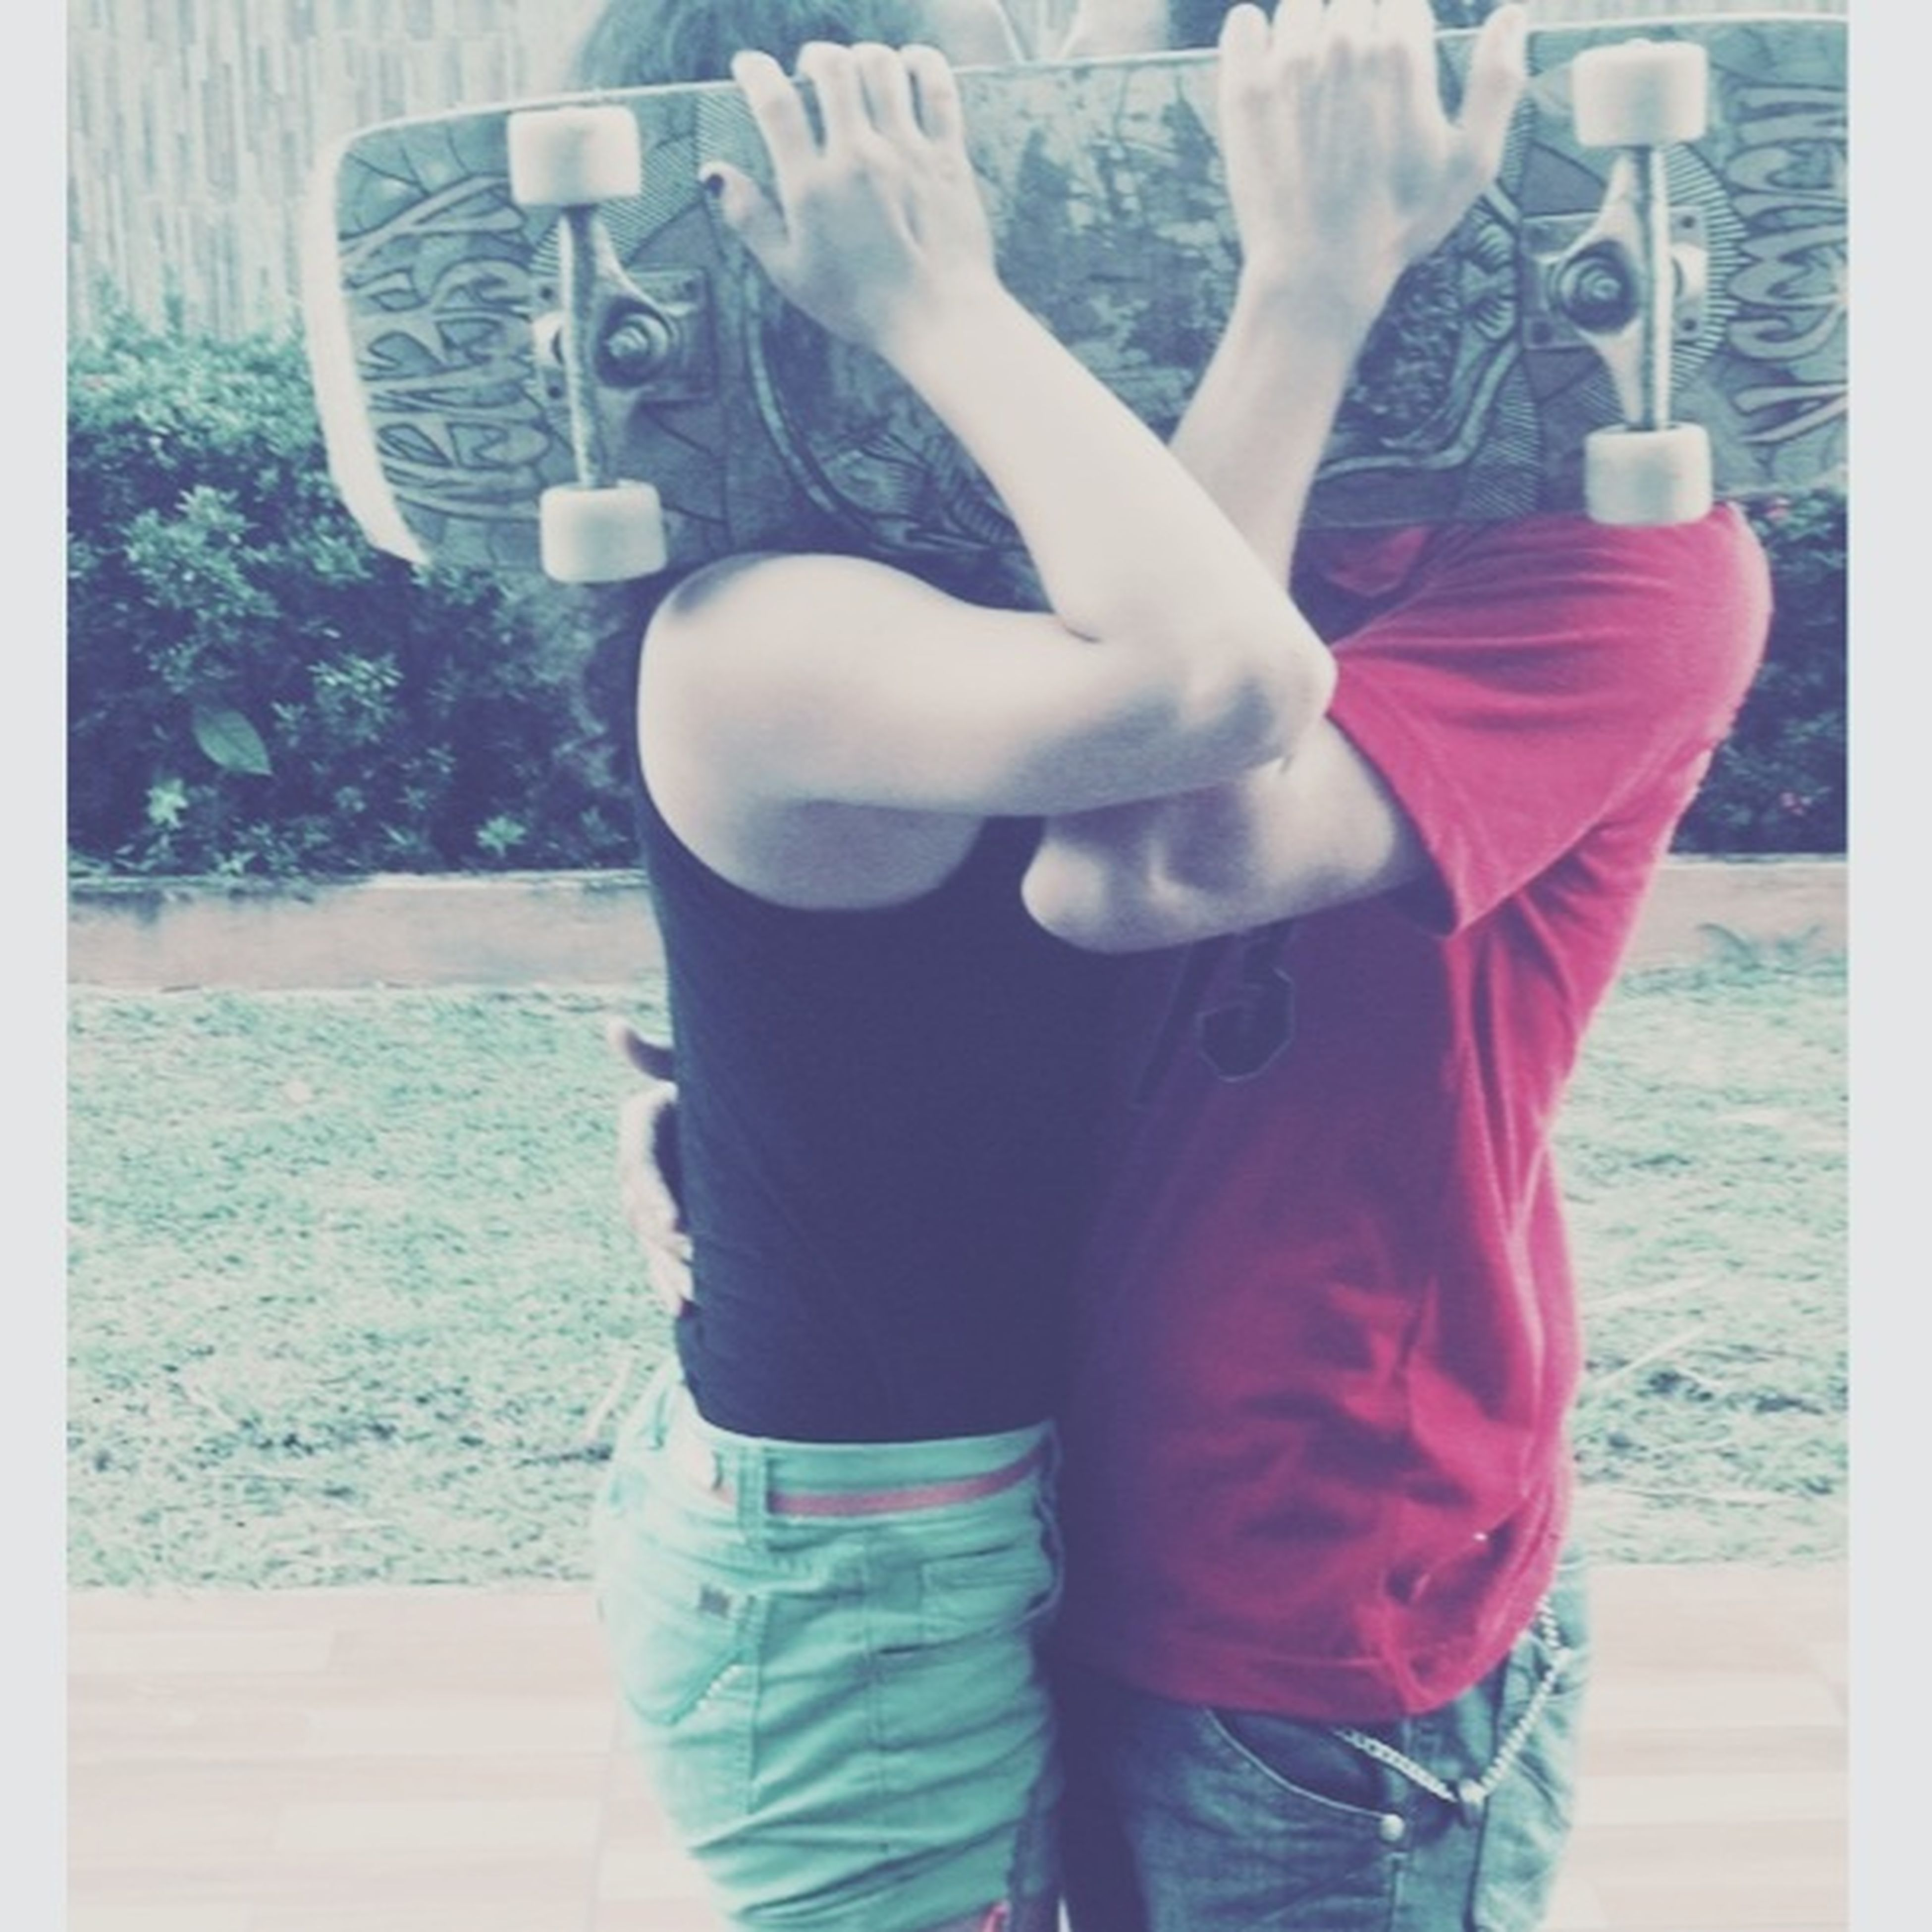 lifestyles, leisure activity, rear view, standing, water, transfer print, childhood, casual clothing, waist up, auto post production filter, day, three quarter length, person, men, indoors, boys, holding